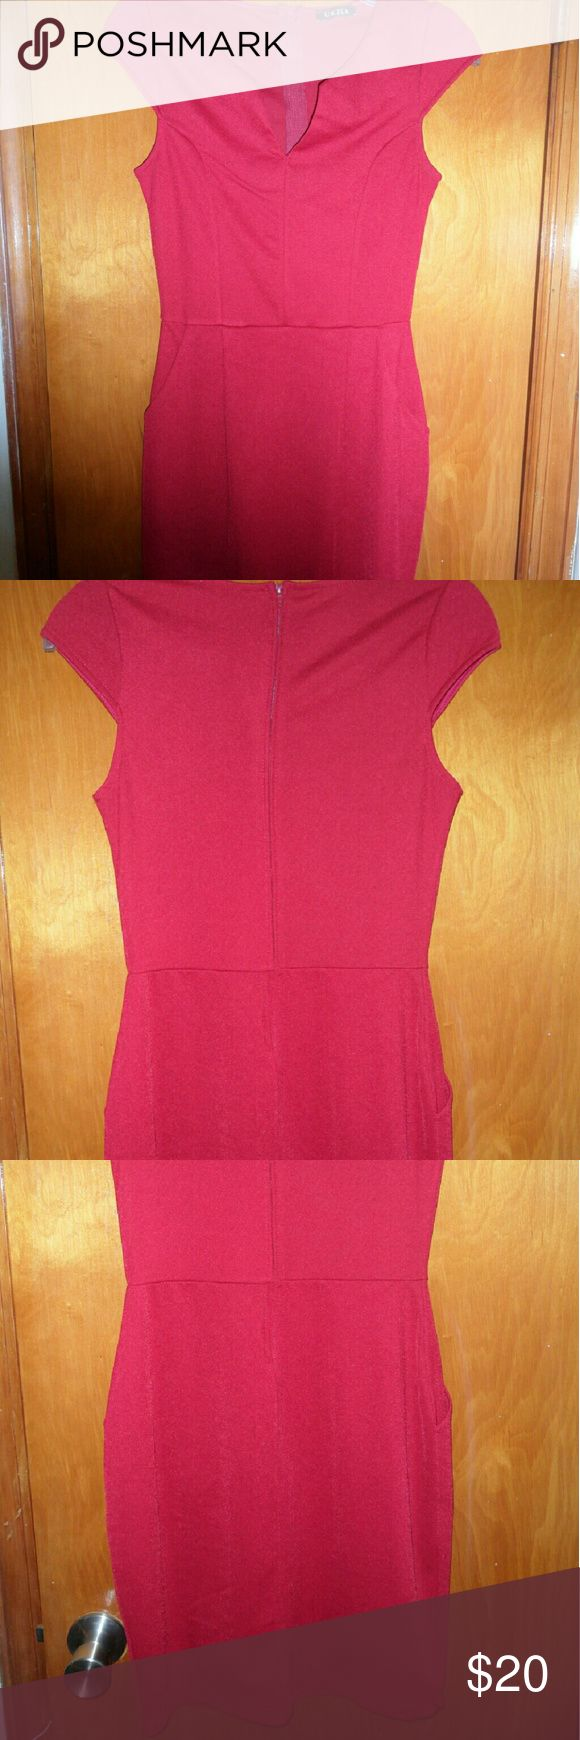 UK 2 LA Red Midi Dress with Pockets Beautiful red dress from UK2LA with curving v-neck. Falls right below the knee. 2 front pockets, Size small. Perfect for weddings and showers! UK 2 LA  Dresses Midi